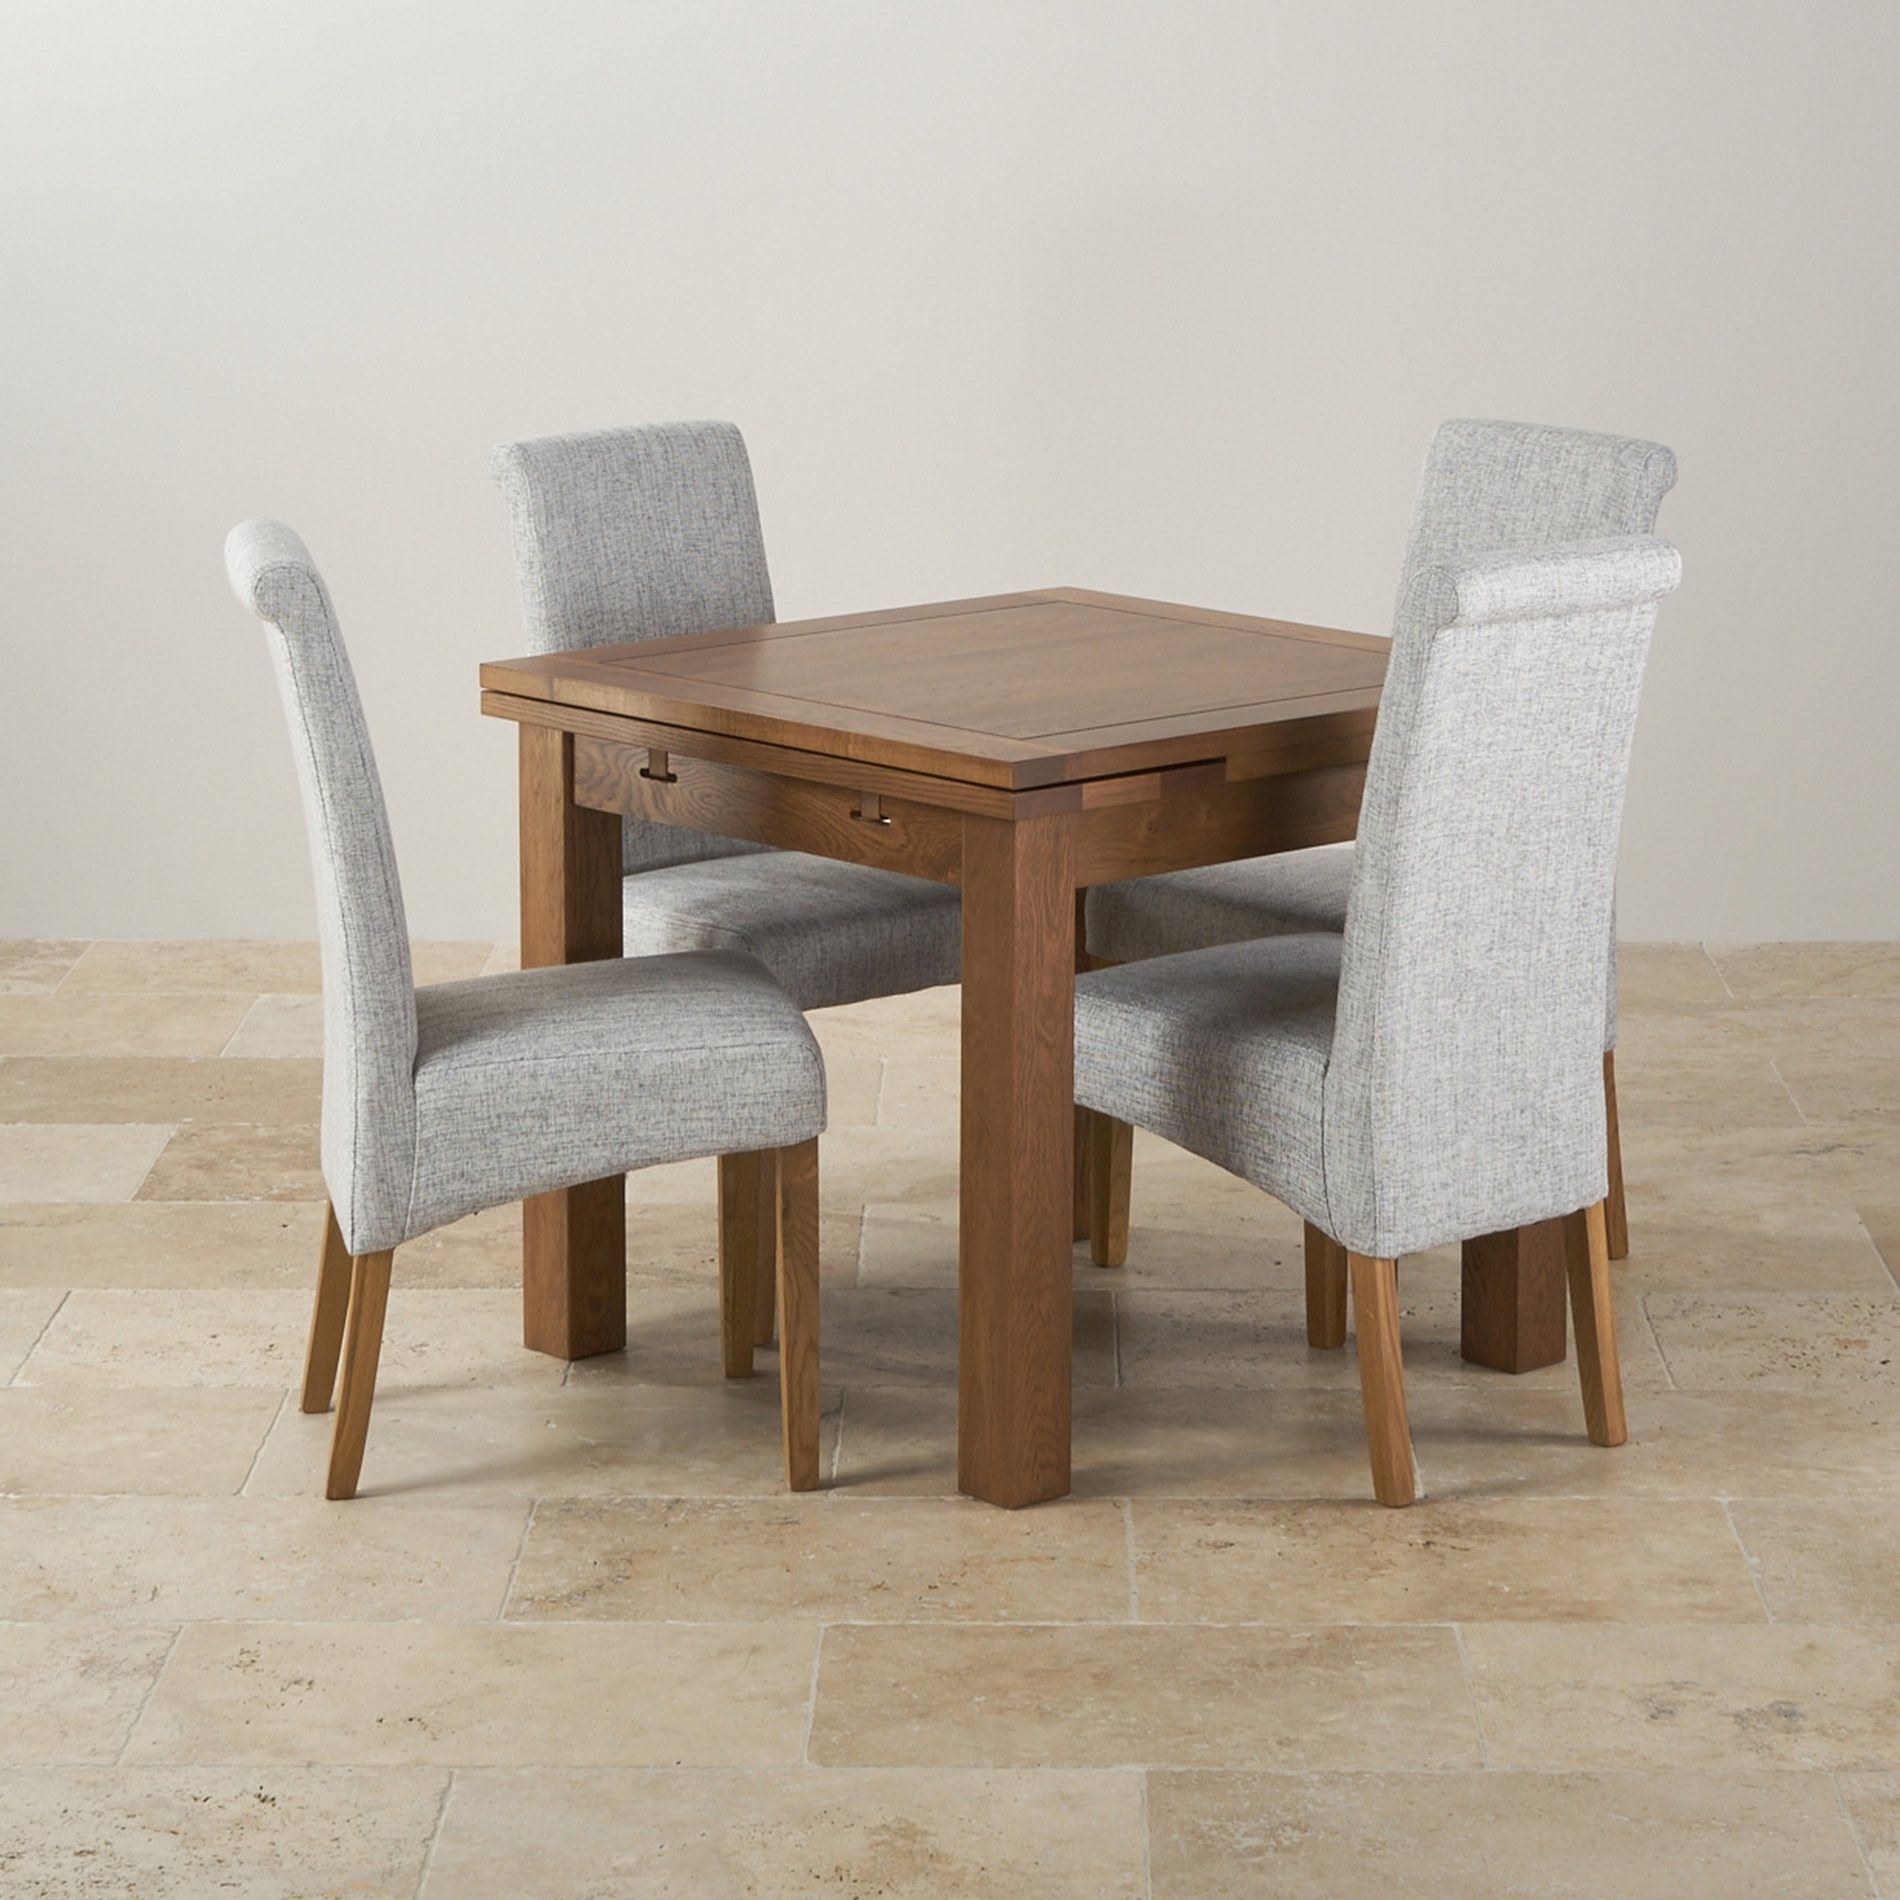 Oak Extendable Dining Tables And Chairs Within Popular London Dark Oak Ex Solid Oak Extending Dining Table And 4 Chairs (View 13 of 25)